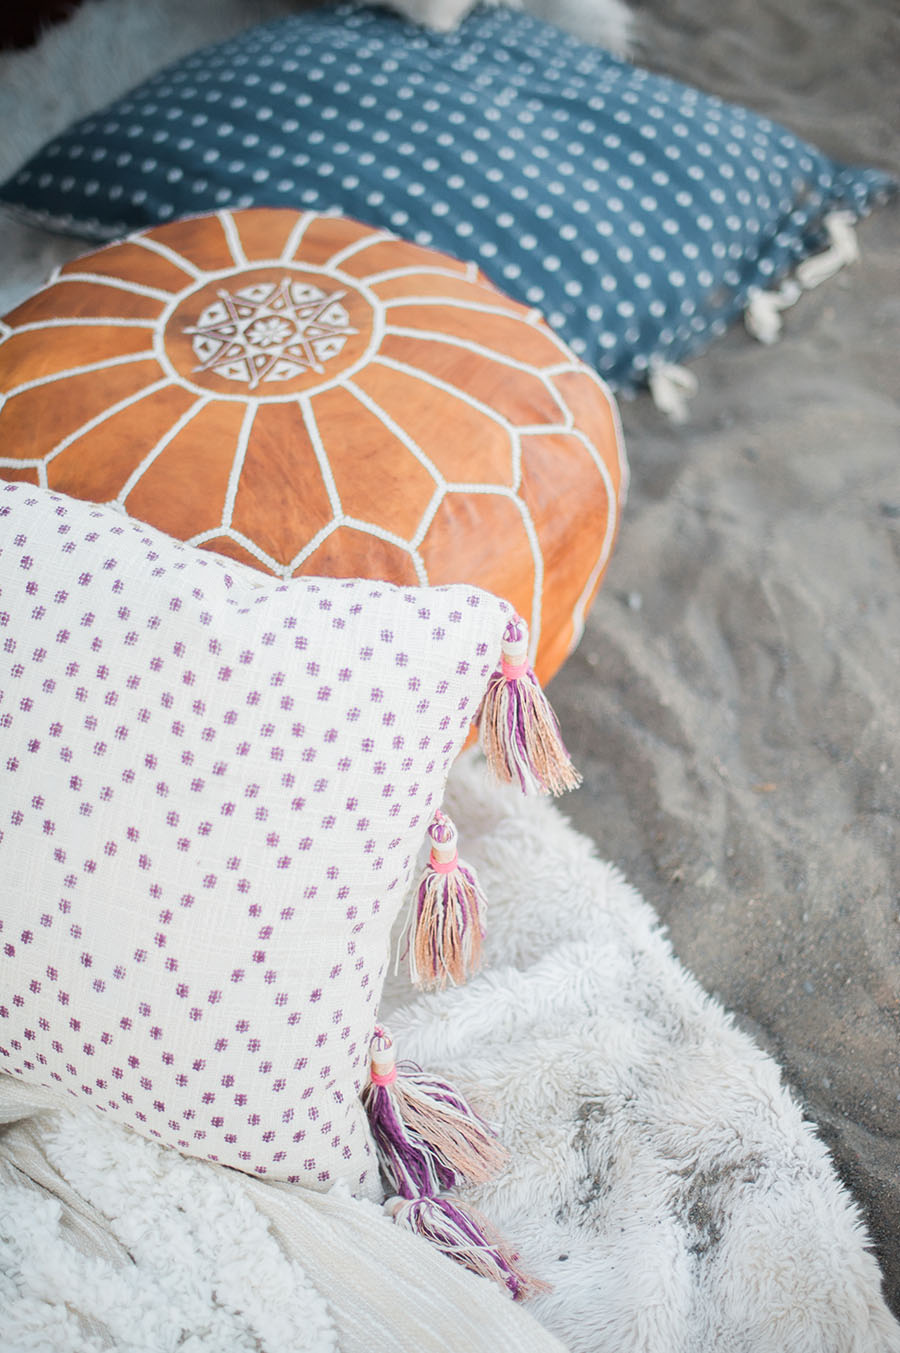 Boho inspired beach picnic with throw pillows and pouf